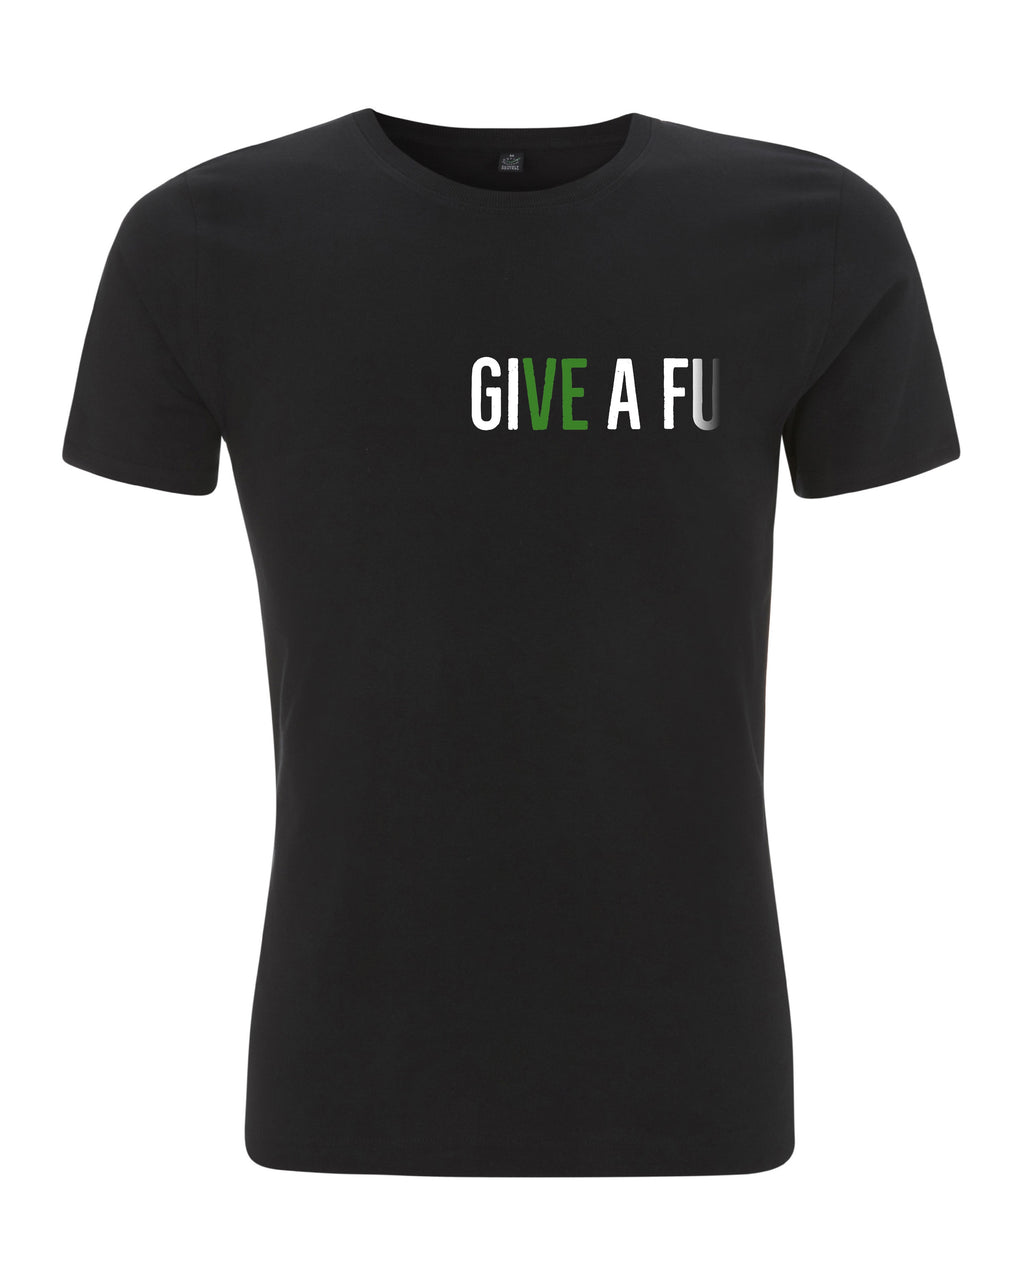 GIVE A FU Original Men's Slim Fit Organic Cotton T-shirt